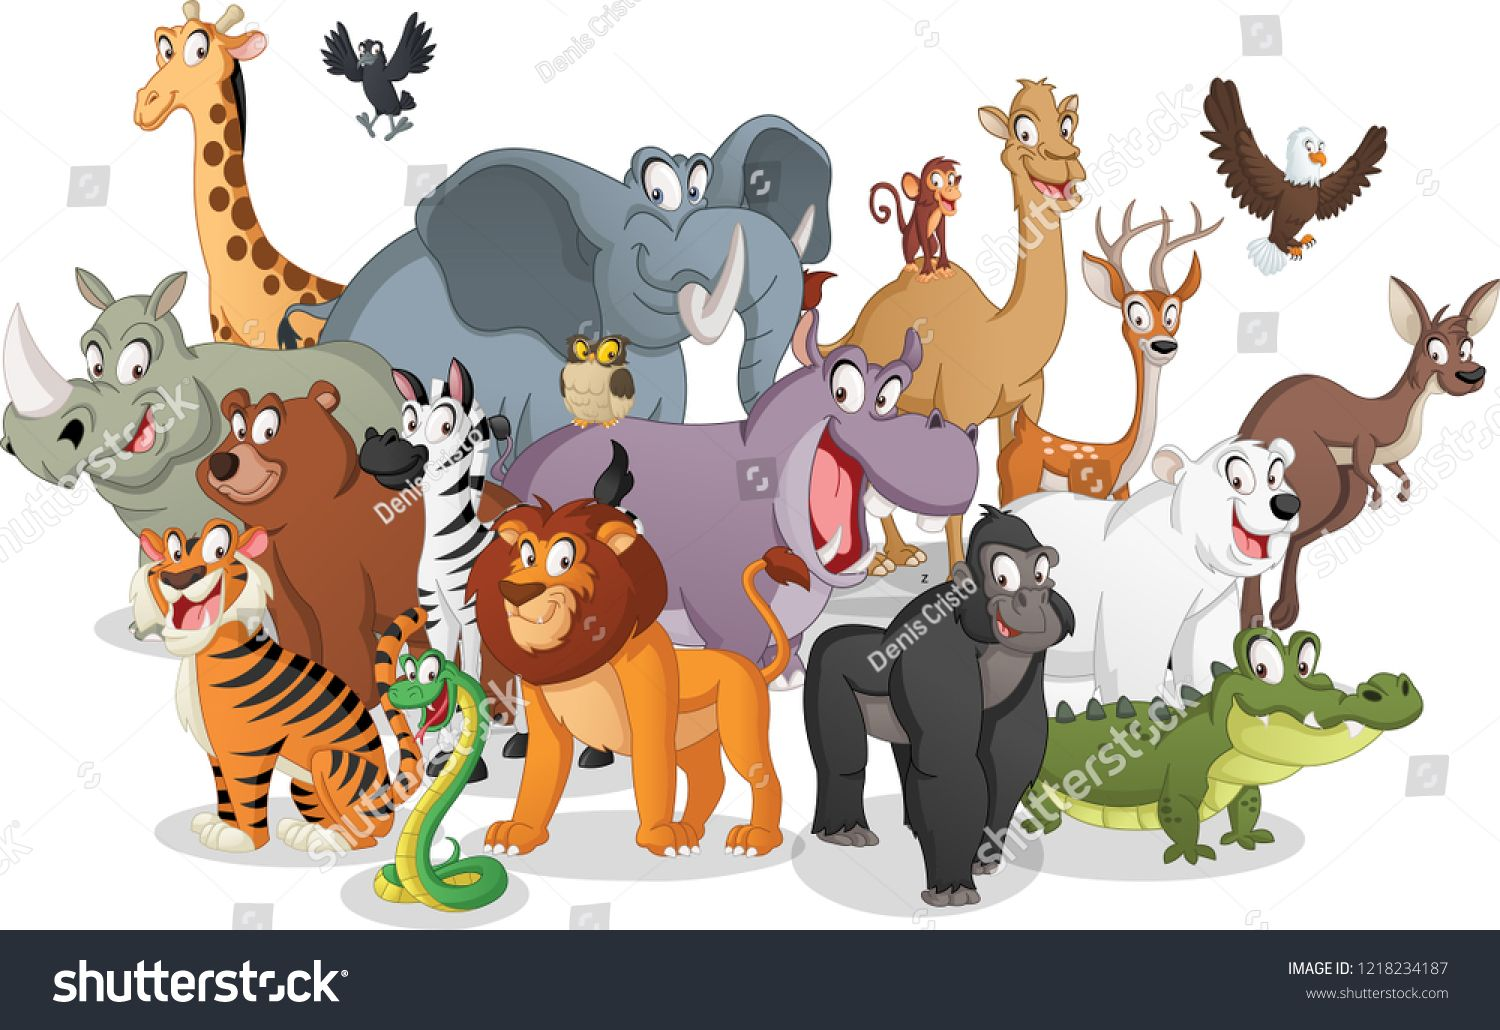 30047d8544a2b Group of cartoon animals. Vector illustration of funny happy animals ...